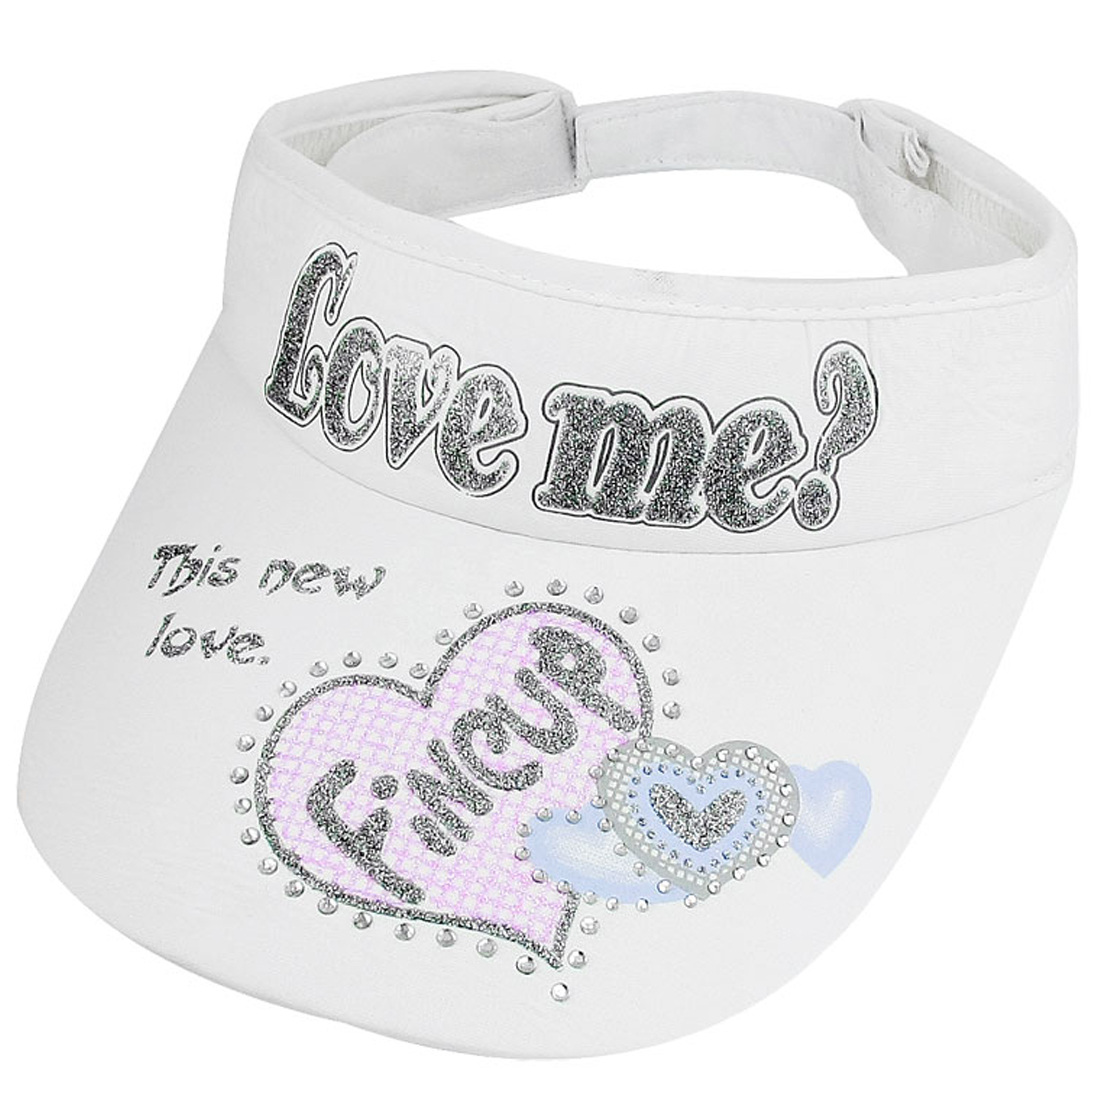 Glittery Letter Pattern Adjustable White Sun Visor Cap for Ladies